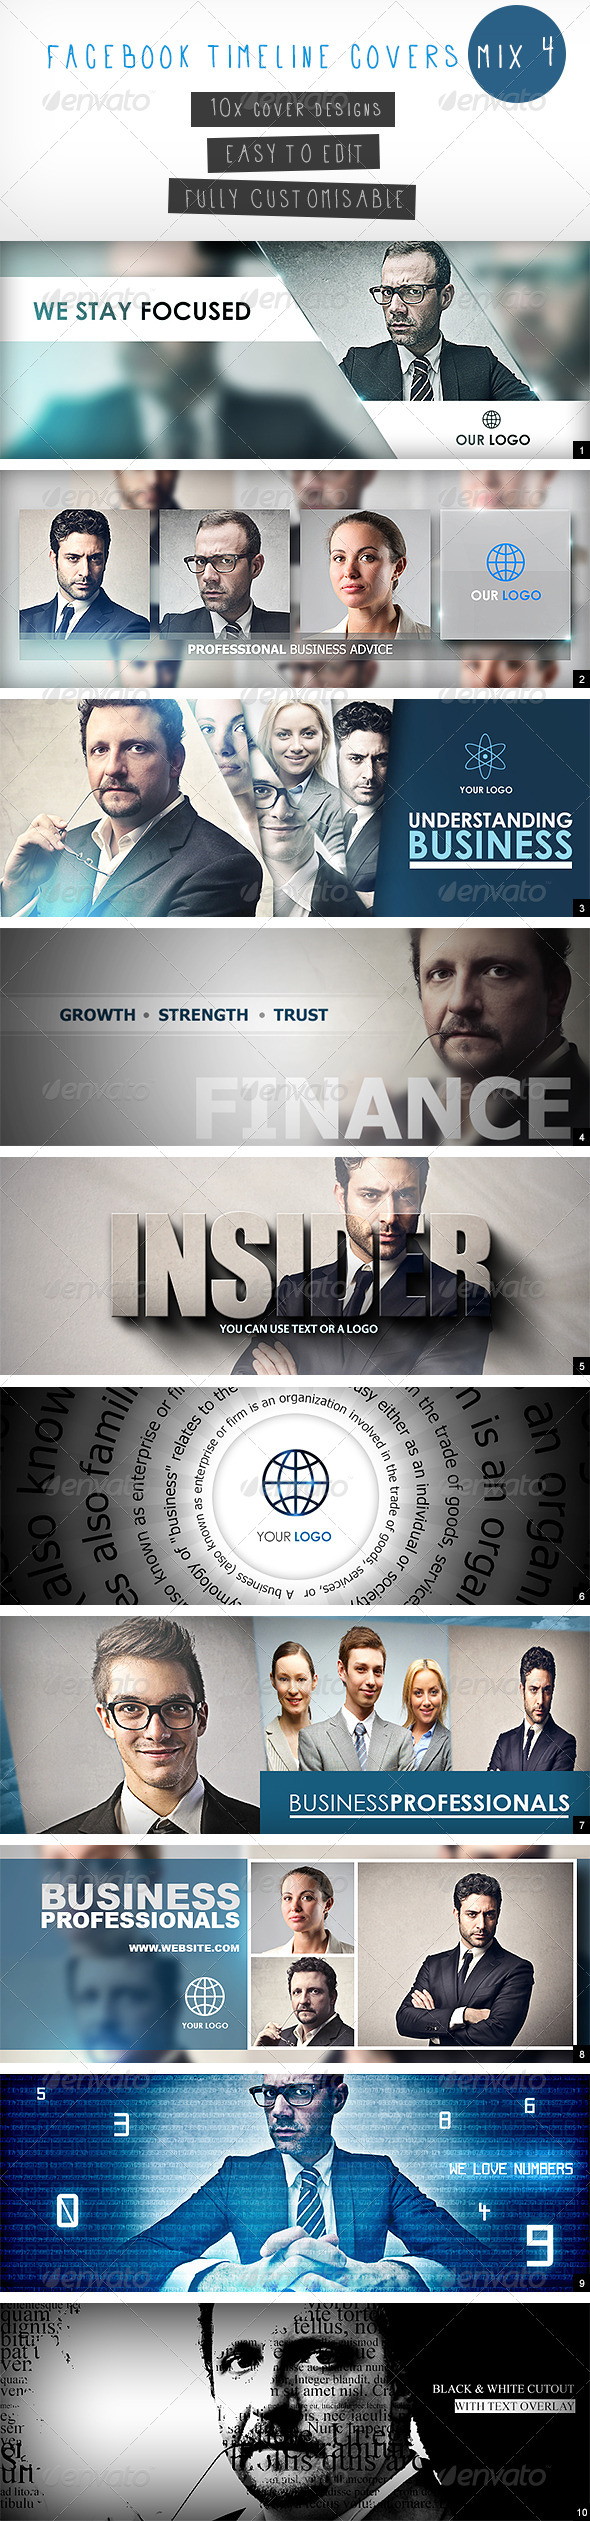 GraphicRiver Facebook Timeline Covers Mix 4 5113907